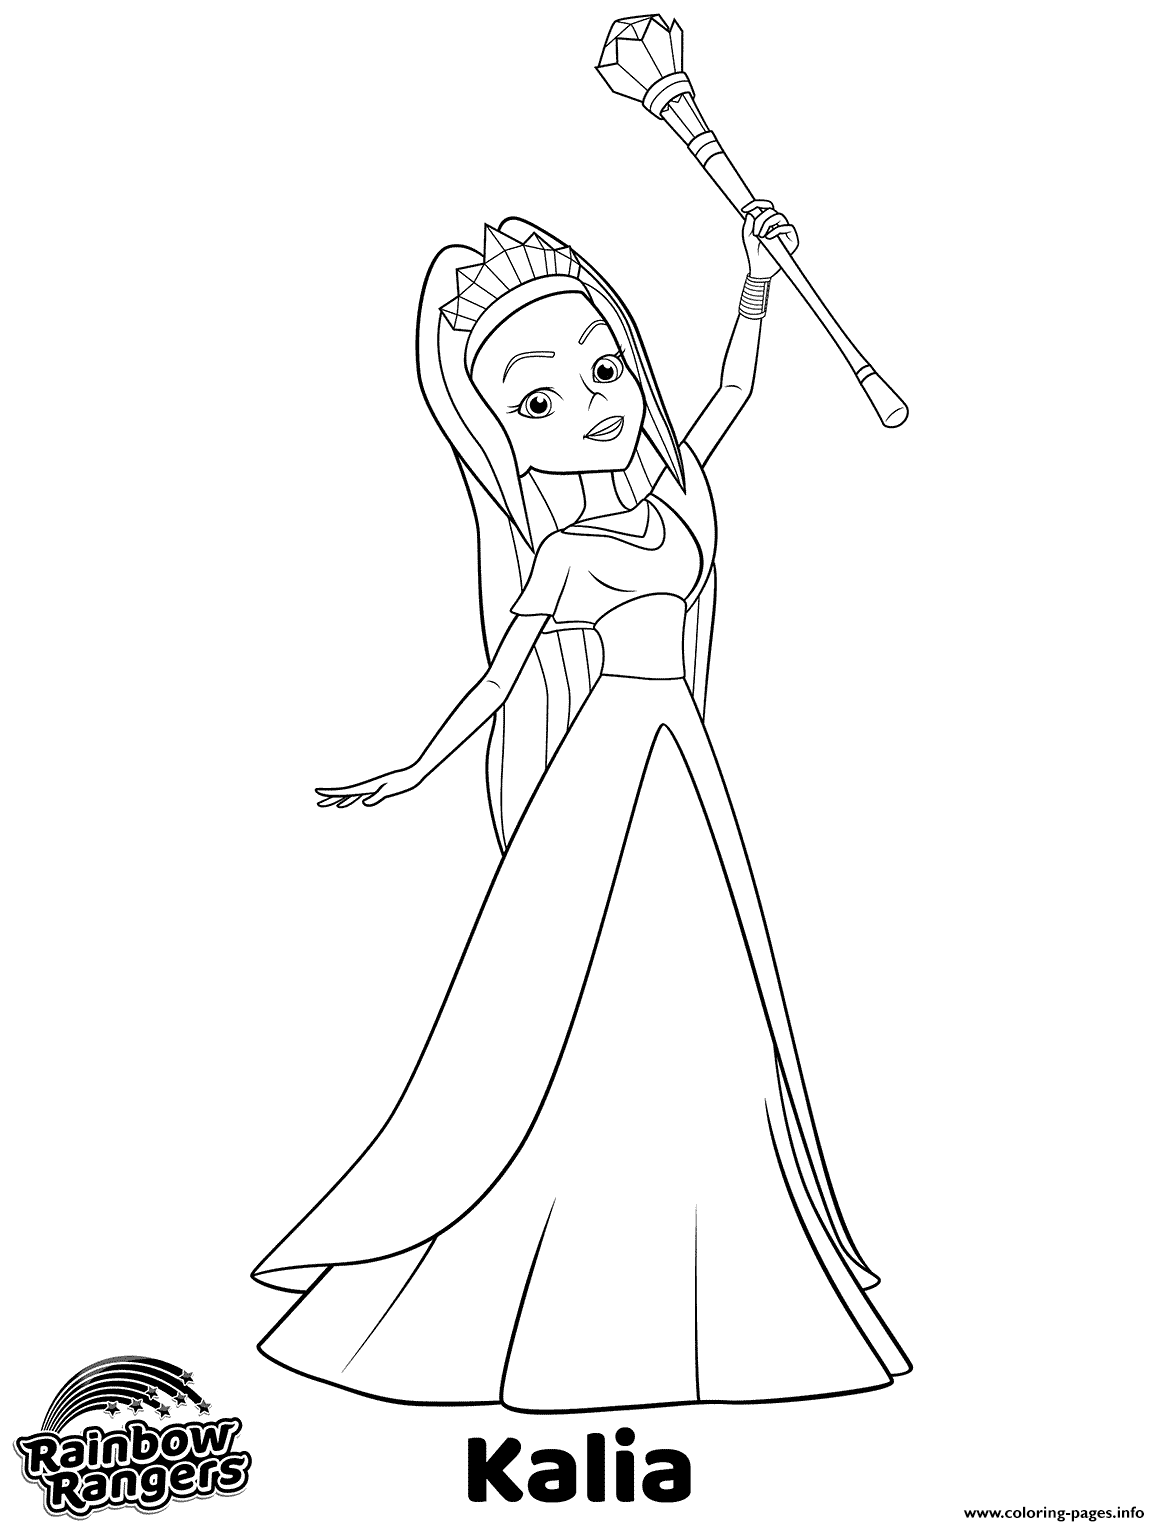 Ranbow Rangers Coloring Pages